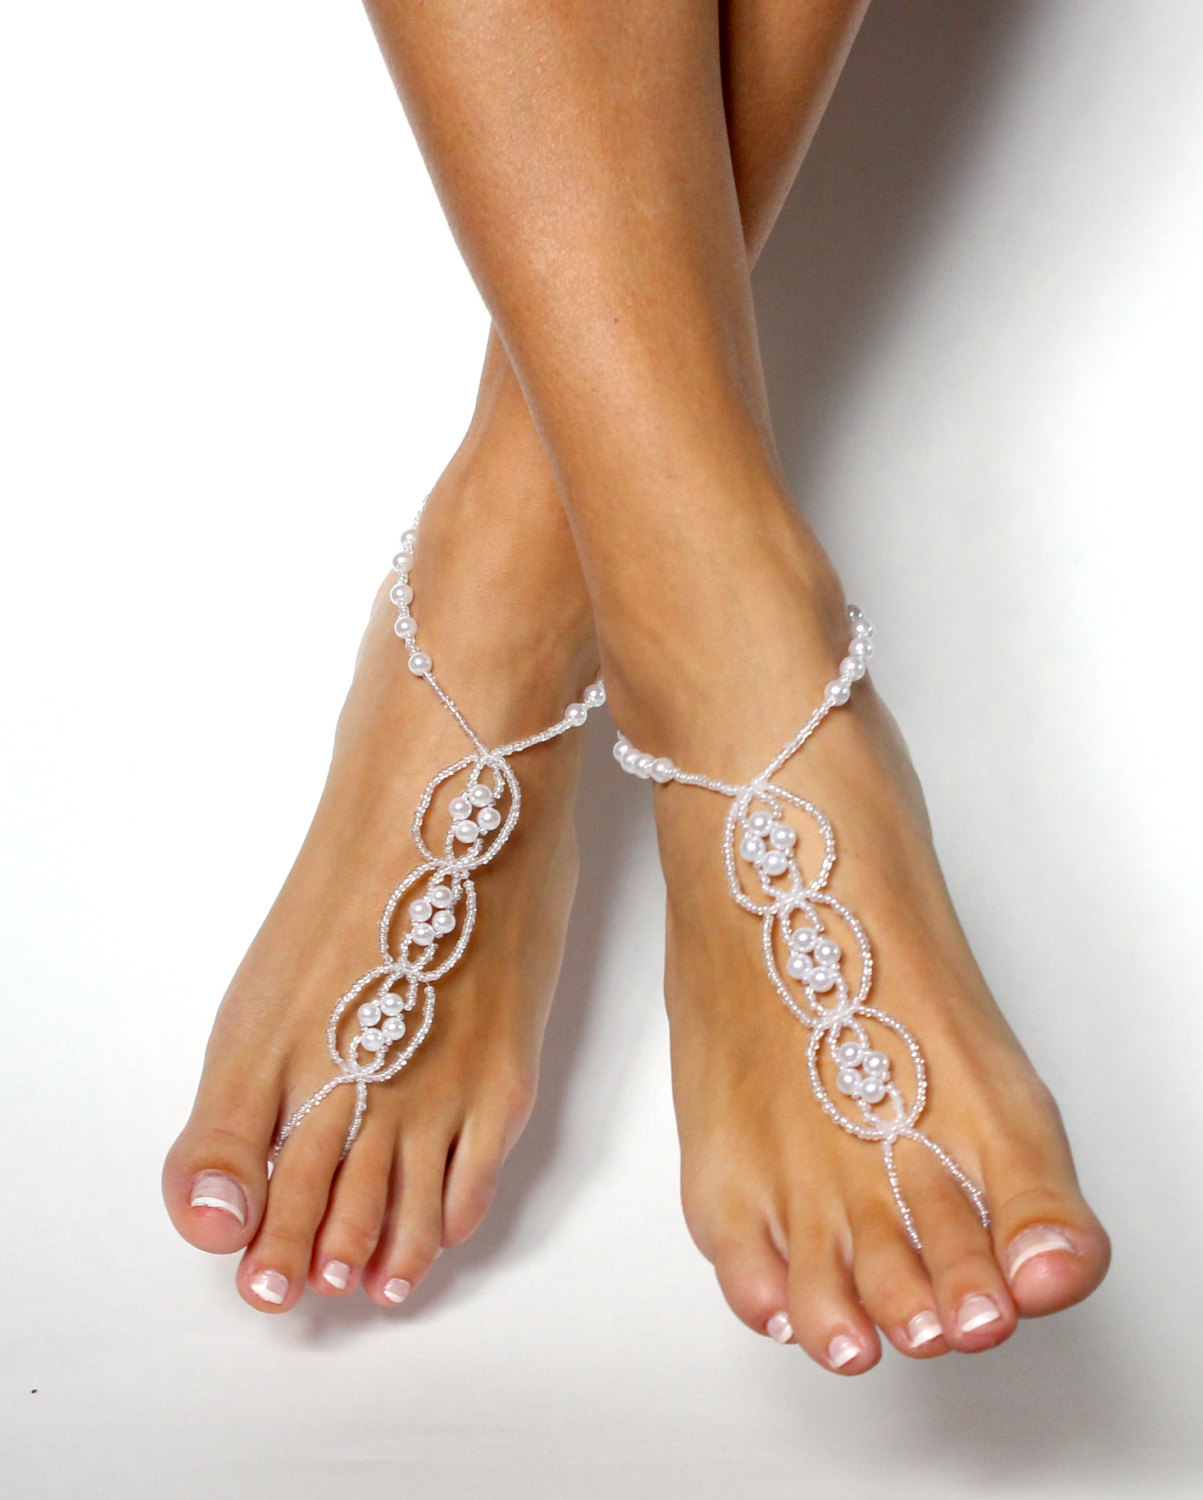 23b10cd6b8f9 Pearl Destination Wedding Shoes White Beaded Barefoot Sandals Shoeless  Sandals Anklet Foot Jewelry